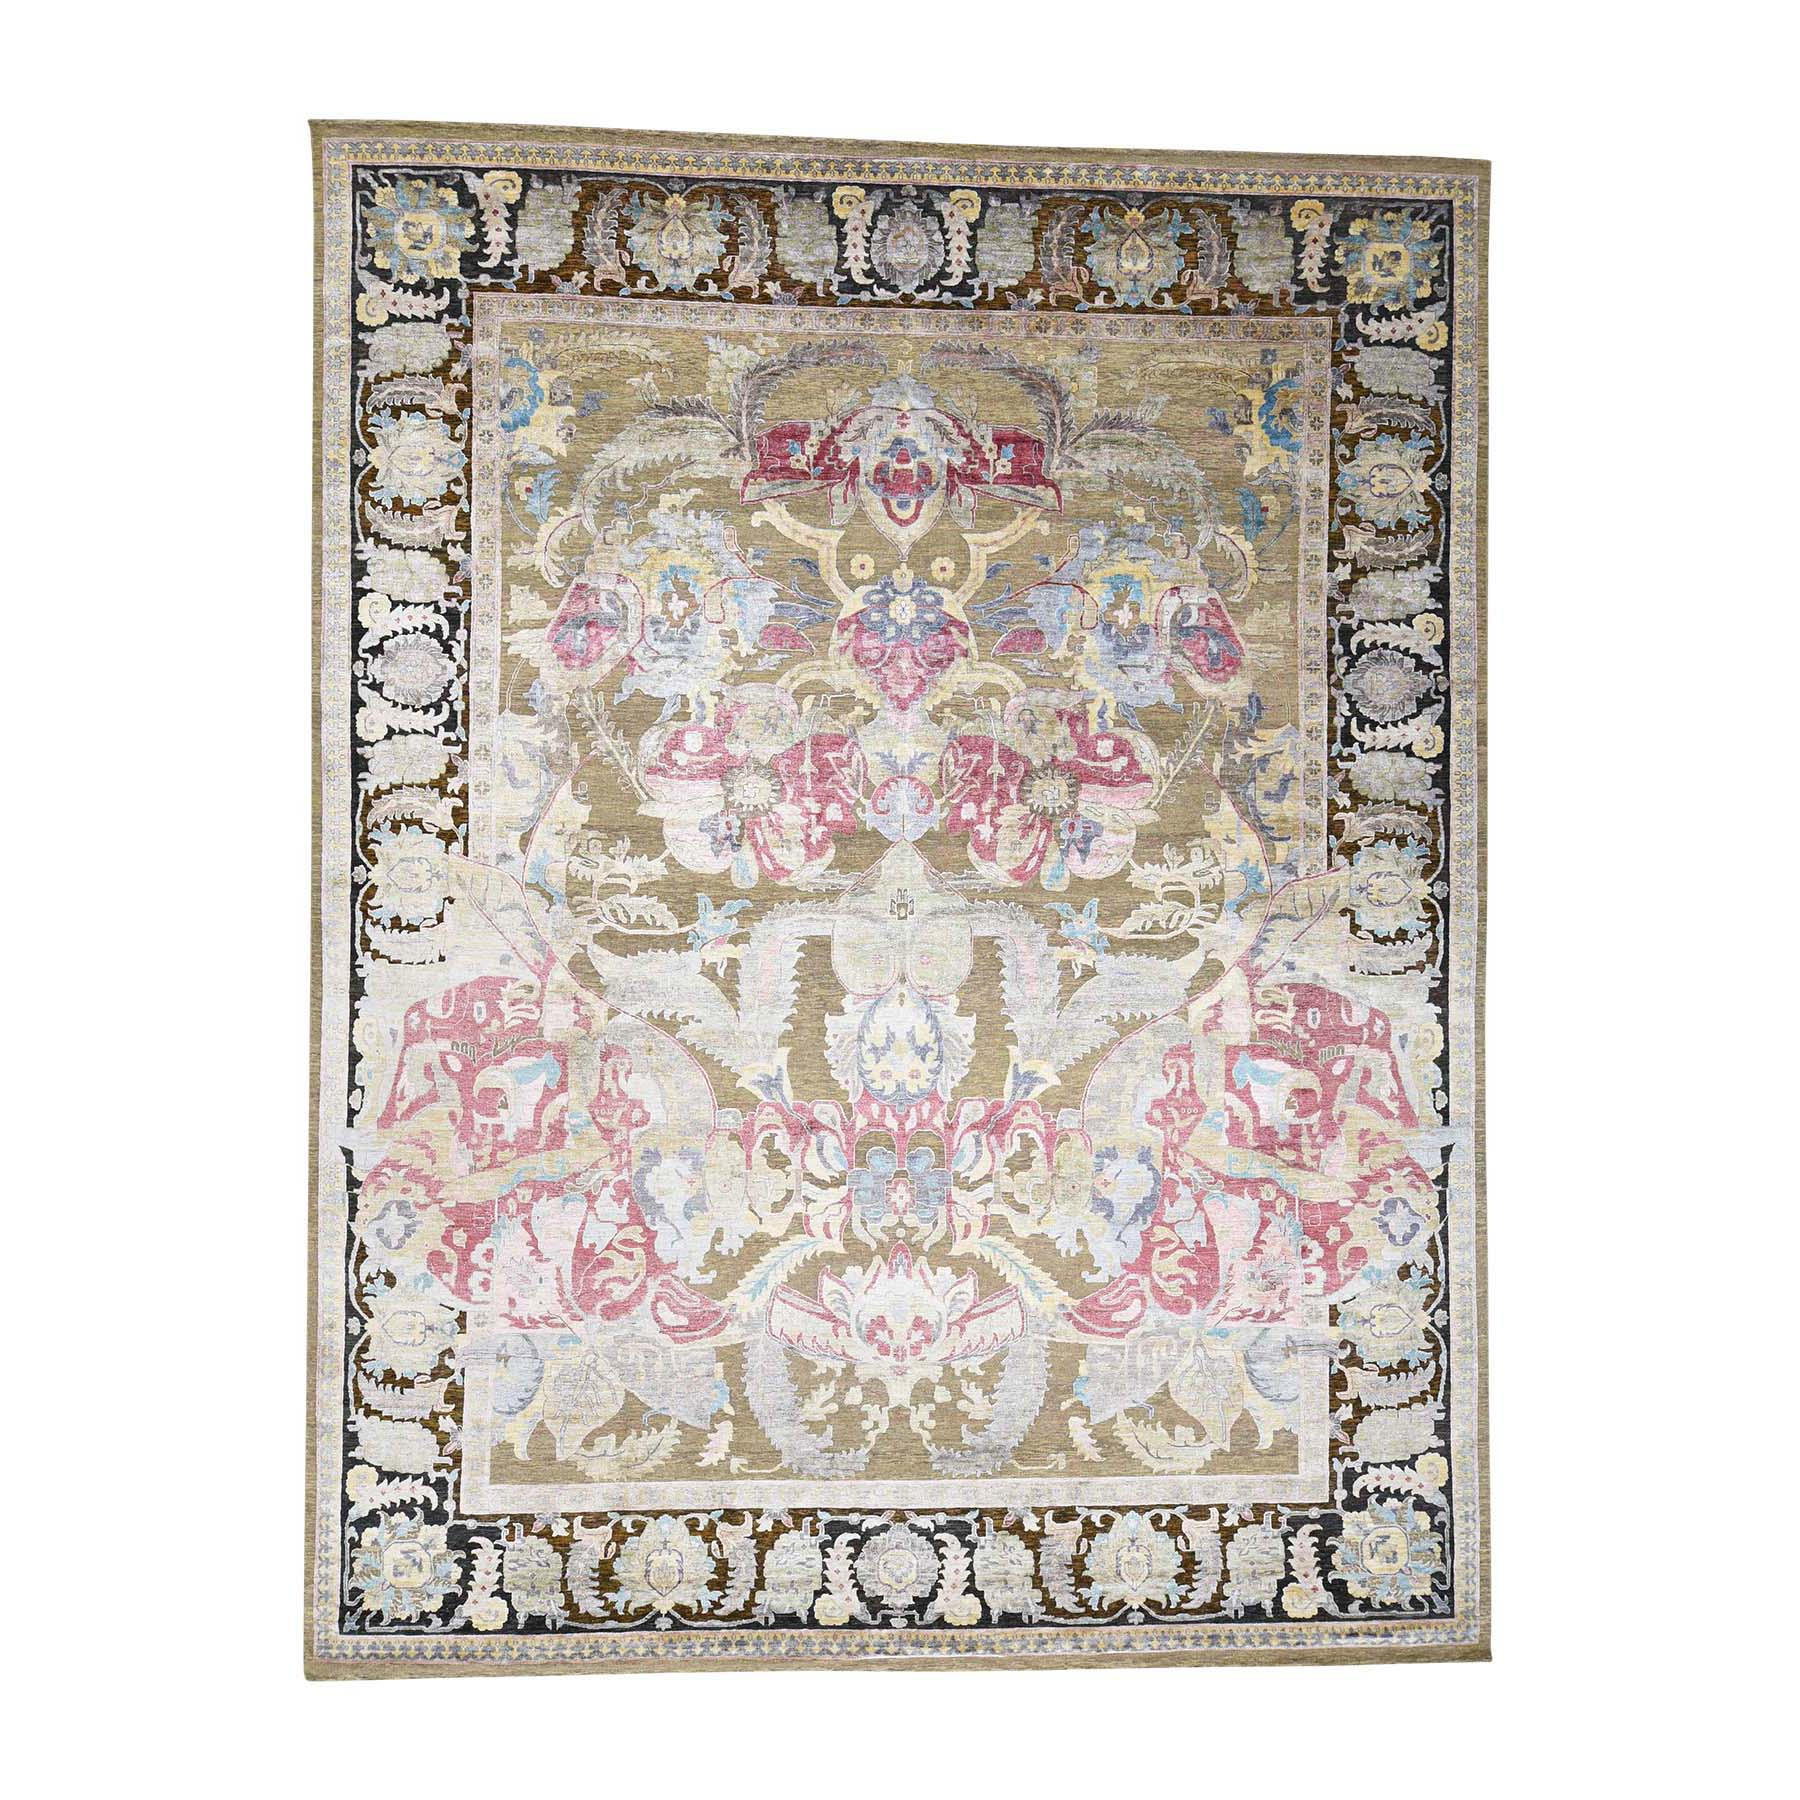 11'8''x15' Arts And Crafts Design Silk with Textured Wool Hand Knotted Oversize Rug